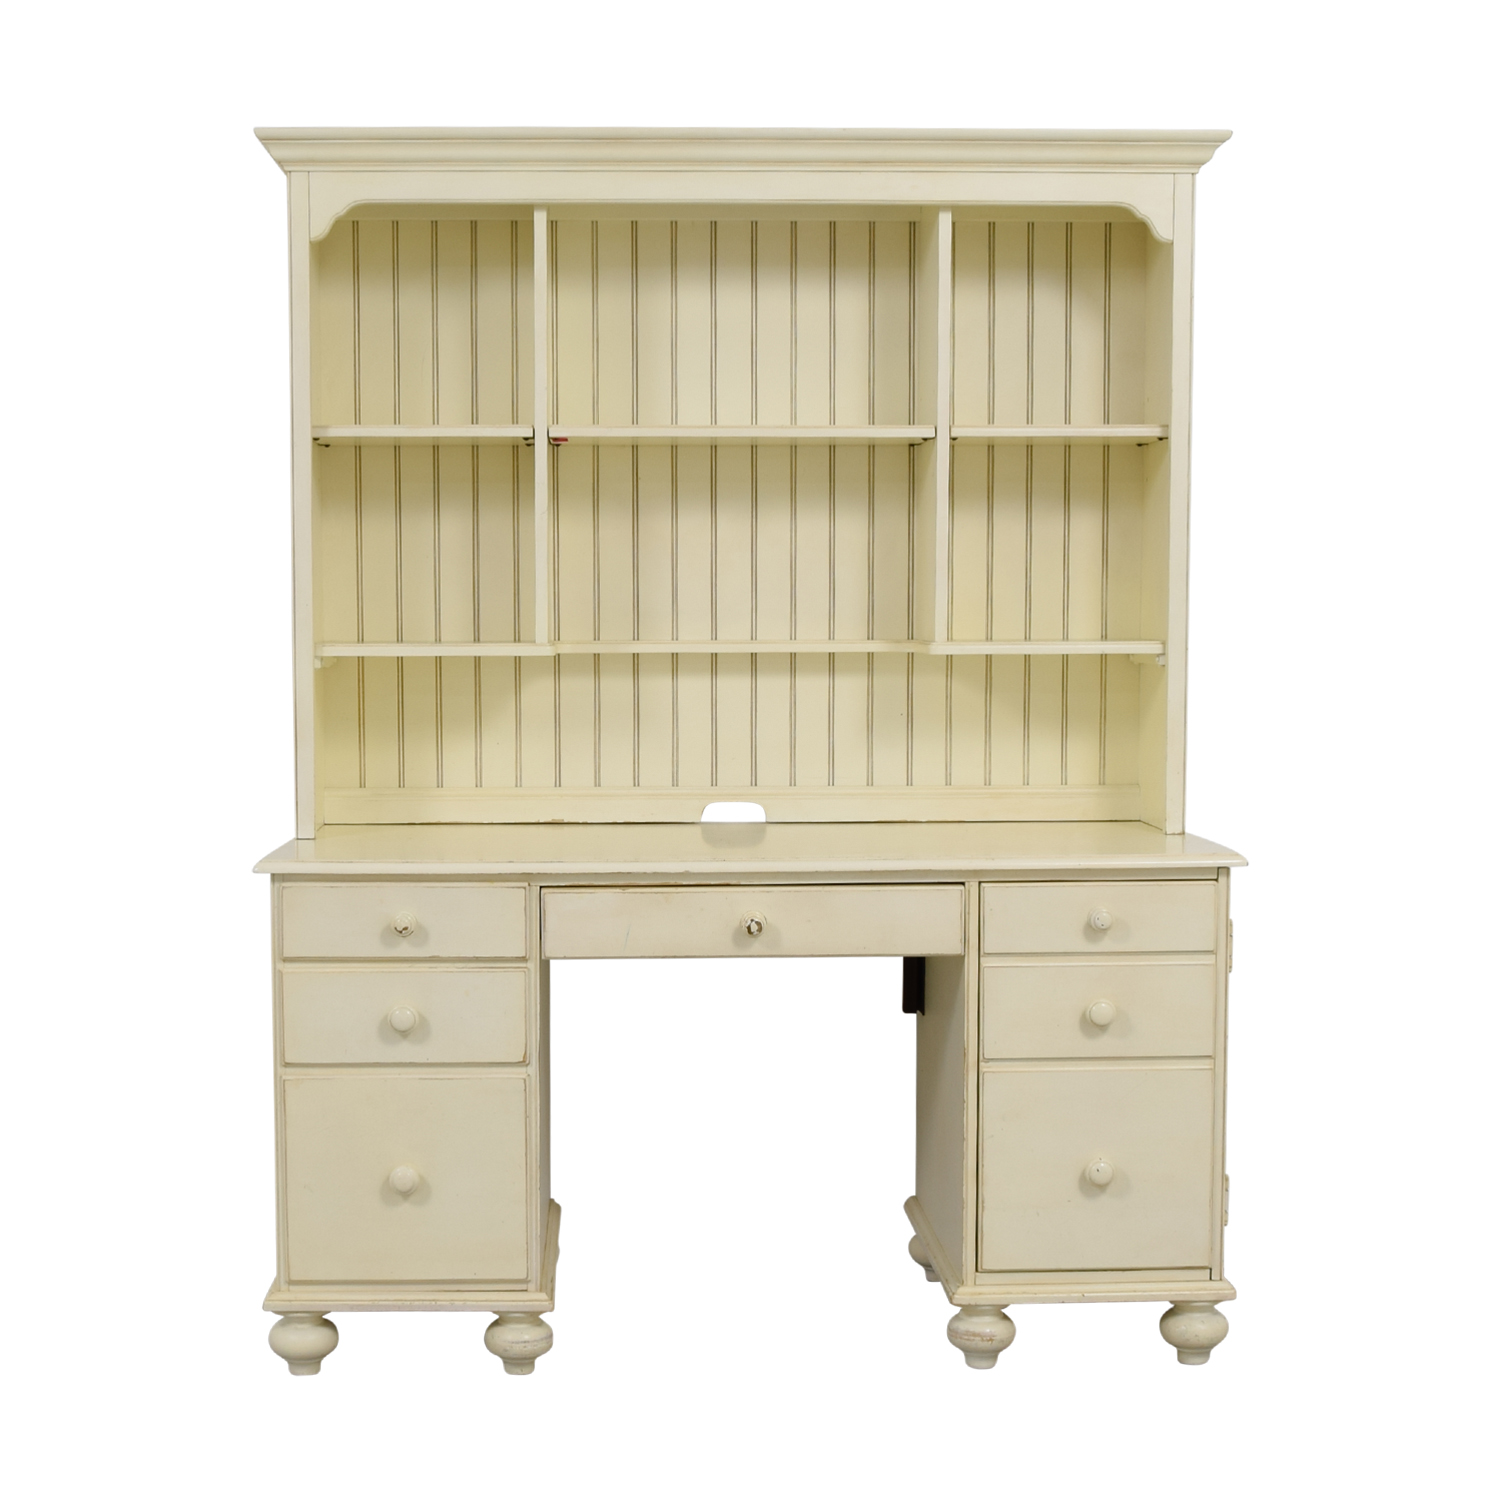 Ethan Allen Ethan Allen White Wood Desk with Hutch discount